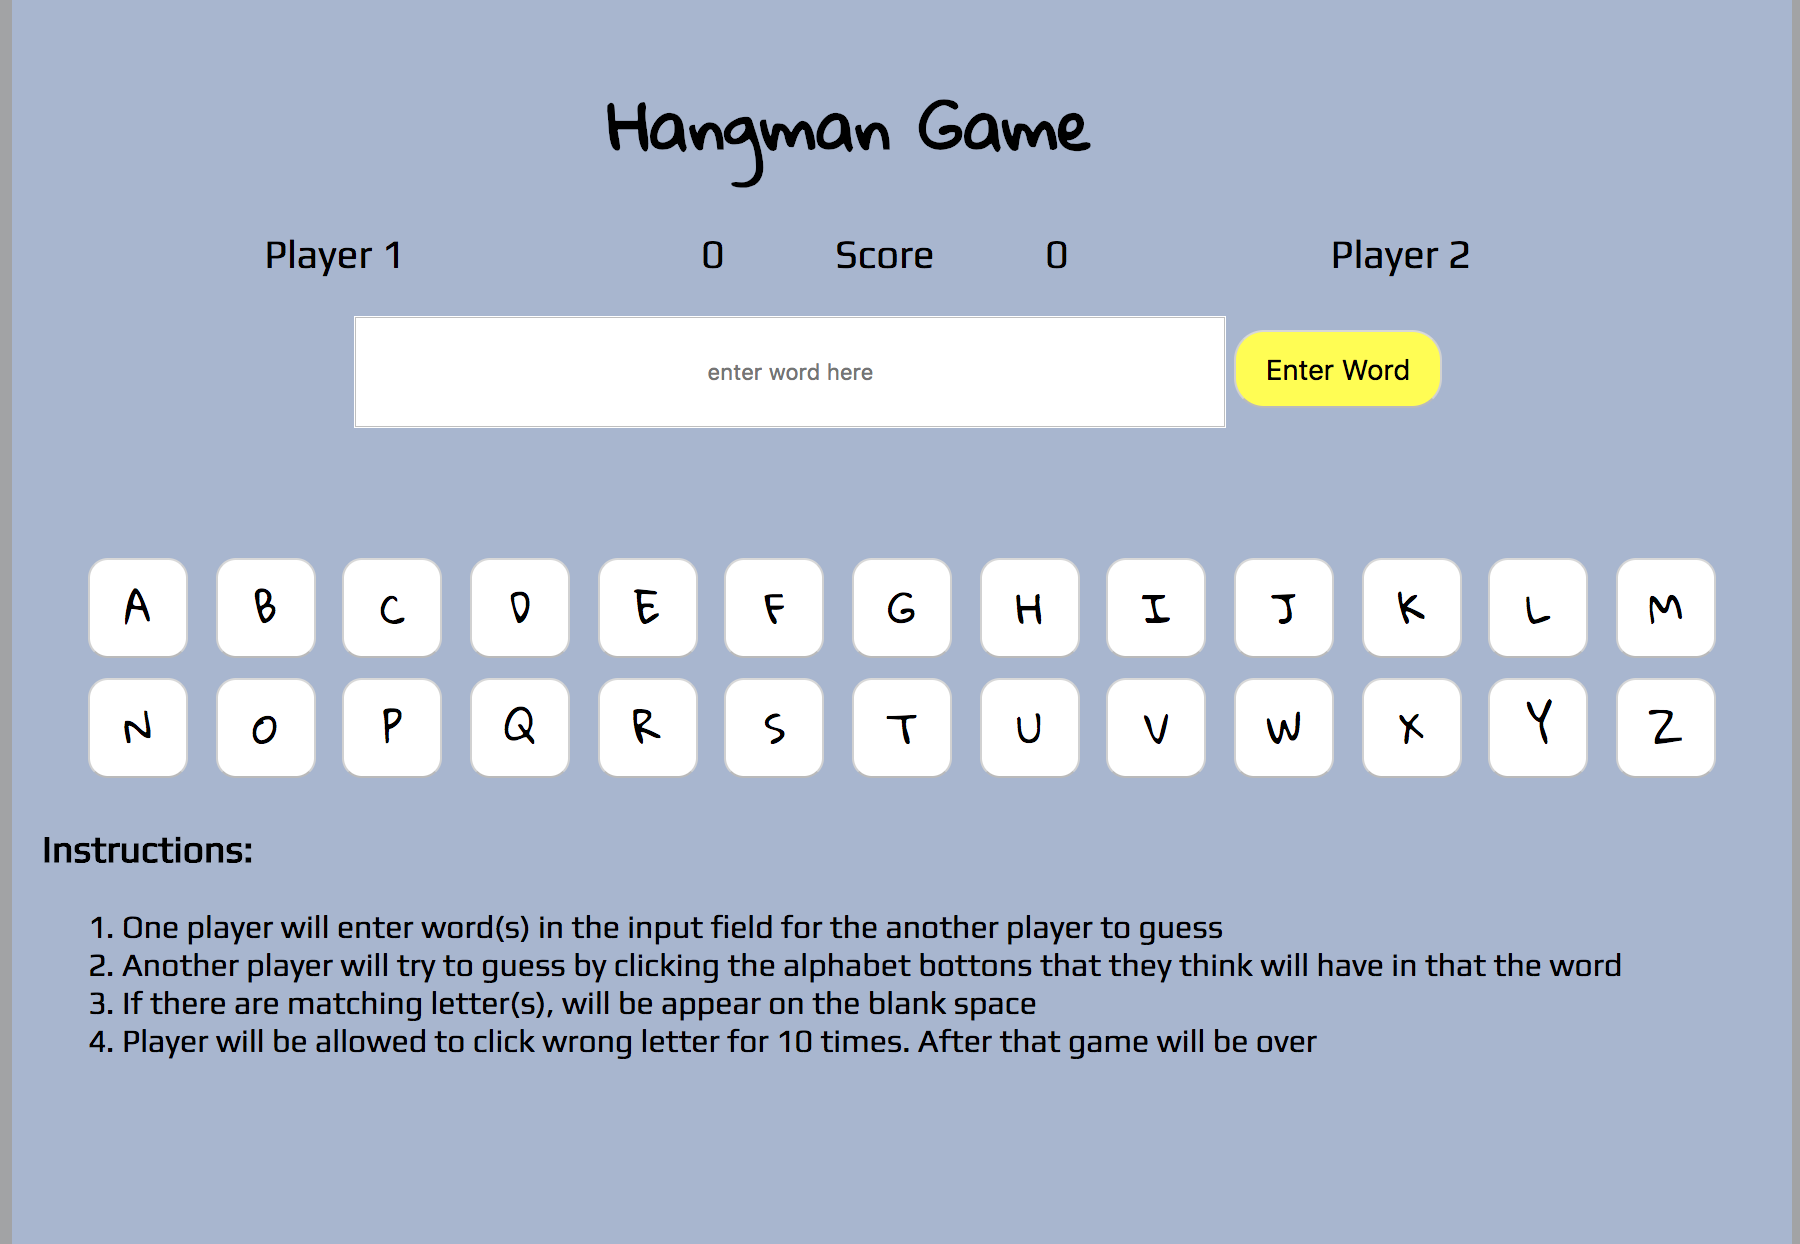 hang man game image